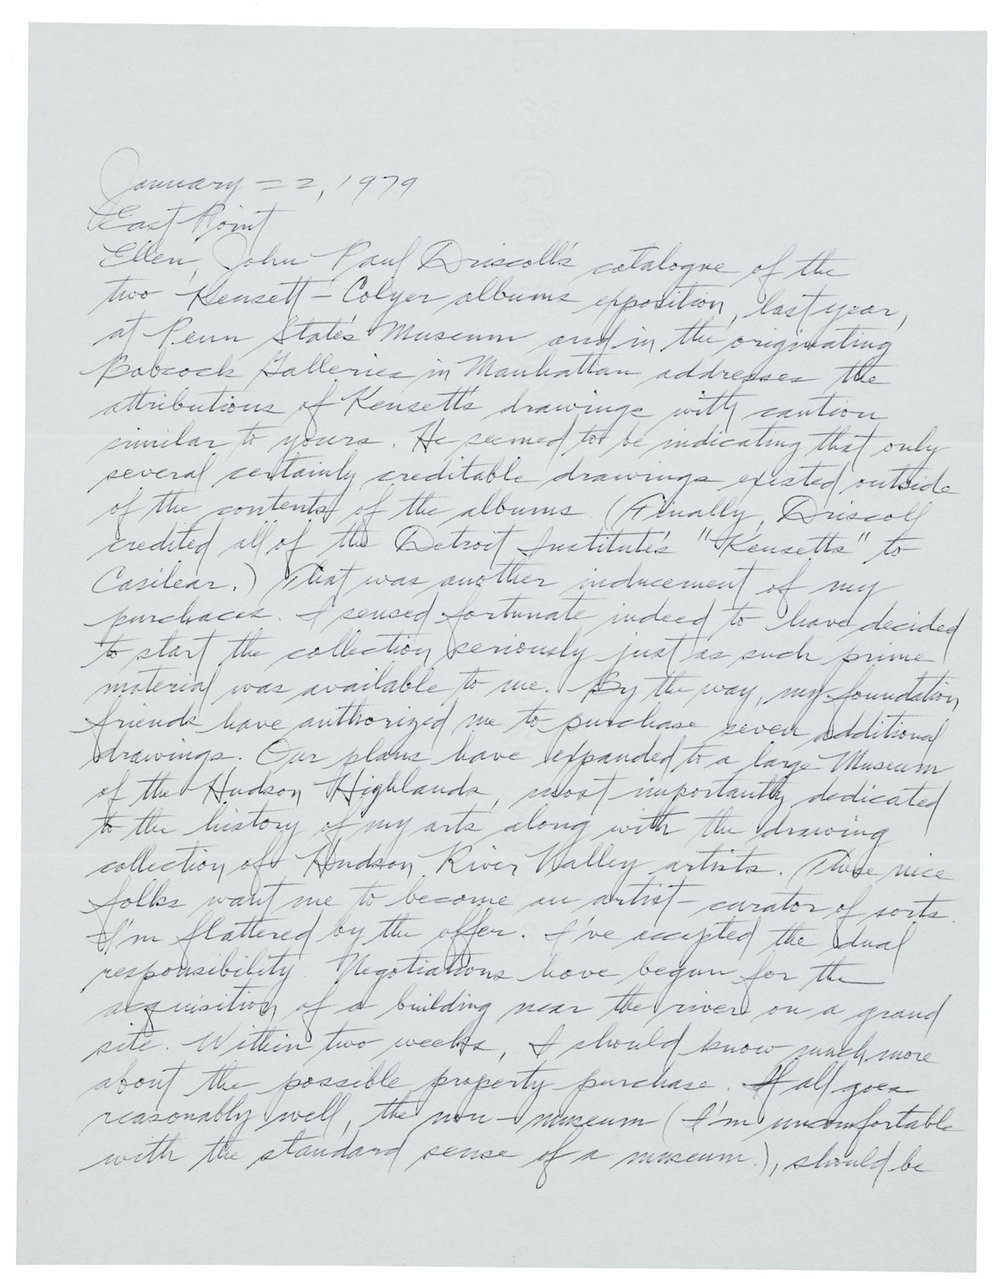 Dan Flavin (67), letter to Ellen H. Johnson, January 22, 1979